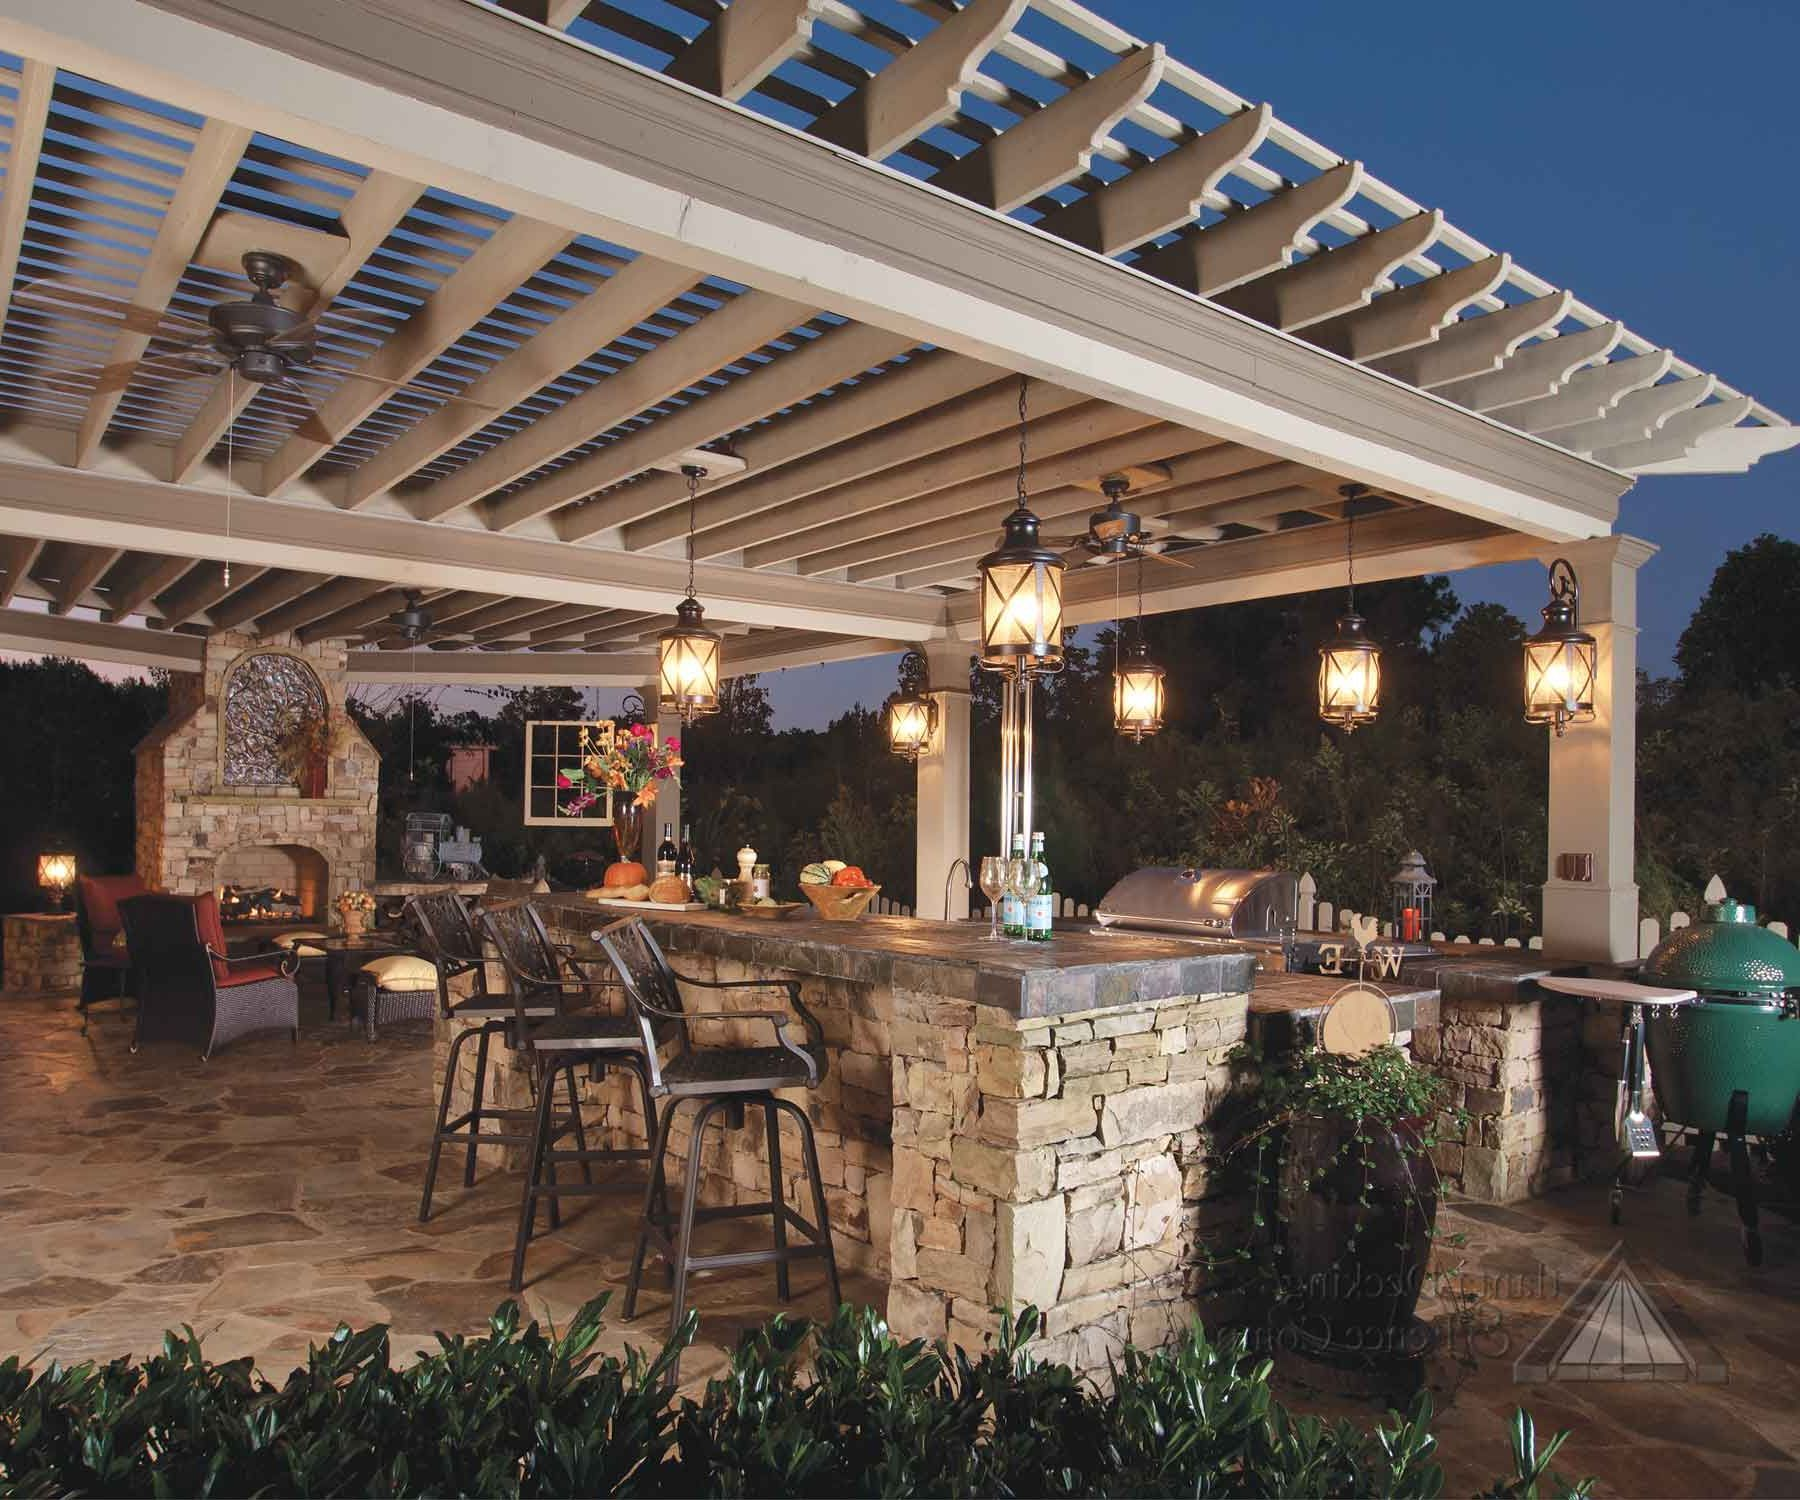 Decorate Your Outdoor Space With Beautiful Outdoor Hanging Light Fixtures  Read More: http:/